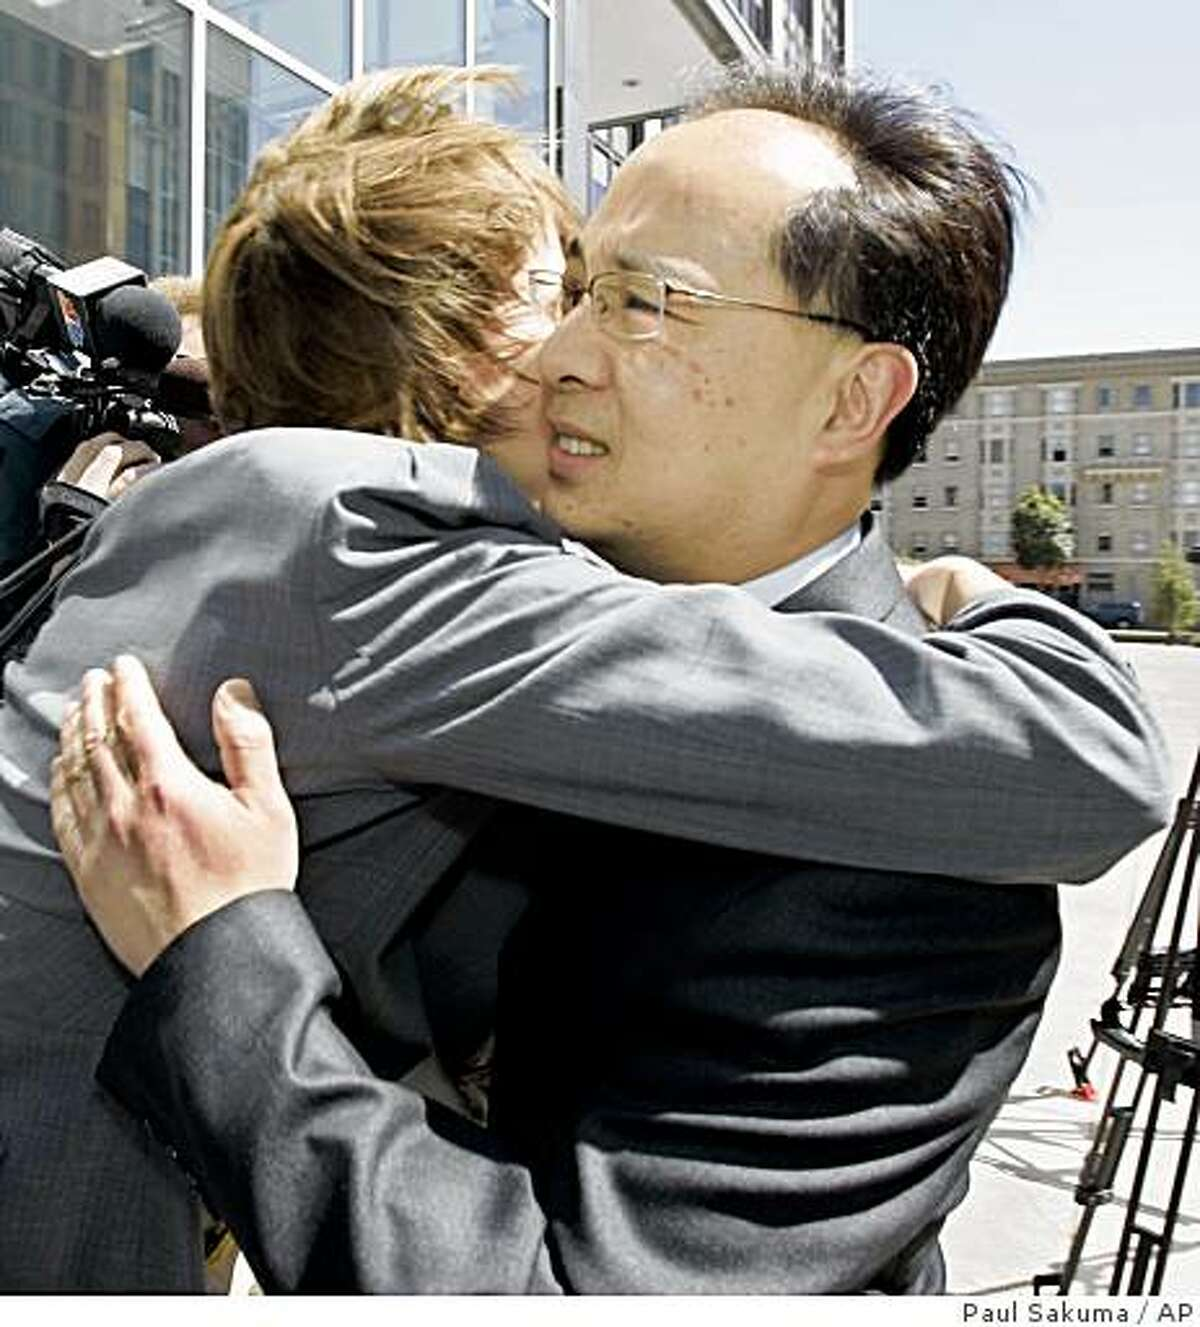 Former San Francisco Supervisor Ed Jew, right, gets a hug from a supporter after a sentencing hearing at a federal courthouse in San Francisco, Friday, April 3, 2009. Jew has been sentenced to five years and four months in prison for attempting to shake down small city businesses having planning permit problems. He was ensnared in a 2007 FBI sting that videotaped Jew receiving $40,000 in marked bills from an owner of a Quickly fast-food restaurant. He later pleaded guilty to one count each of bribery, extortion and fraud and admitted he tried to force several Quickly owners to pay him a combined $80,000. (AP Photo/Paul Sakuma)